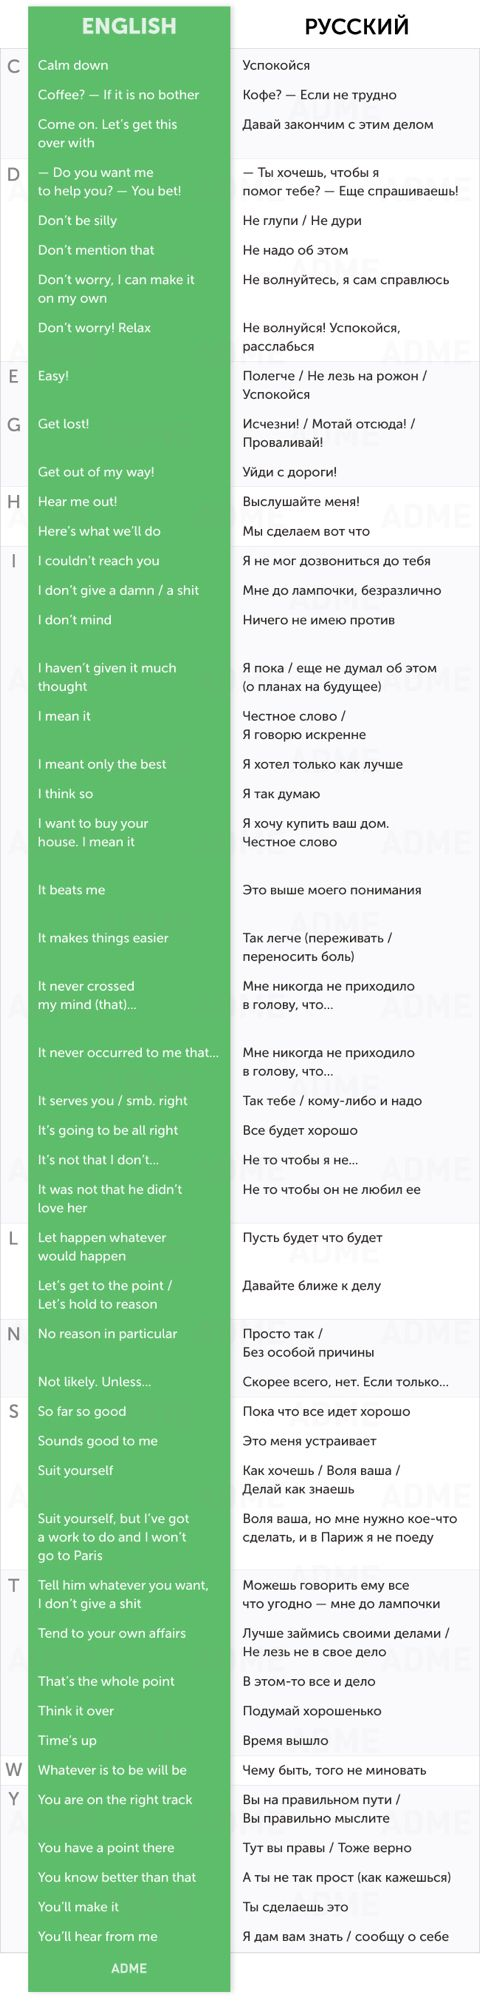 50 phrases Russian-English